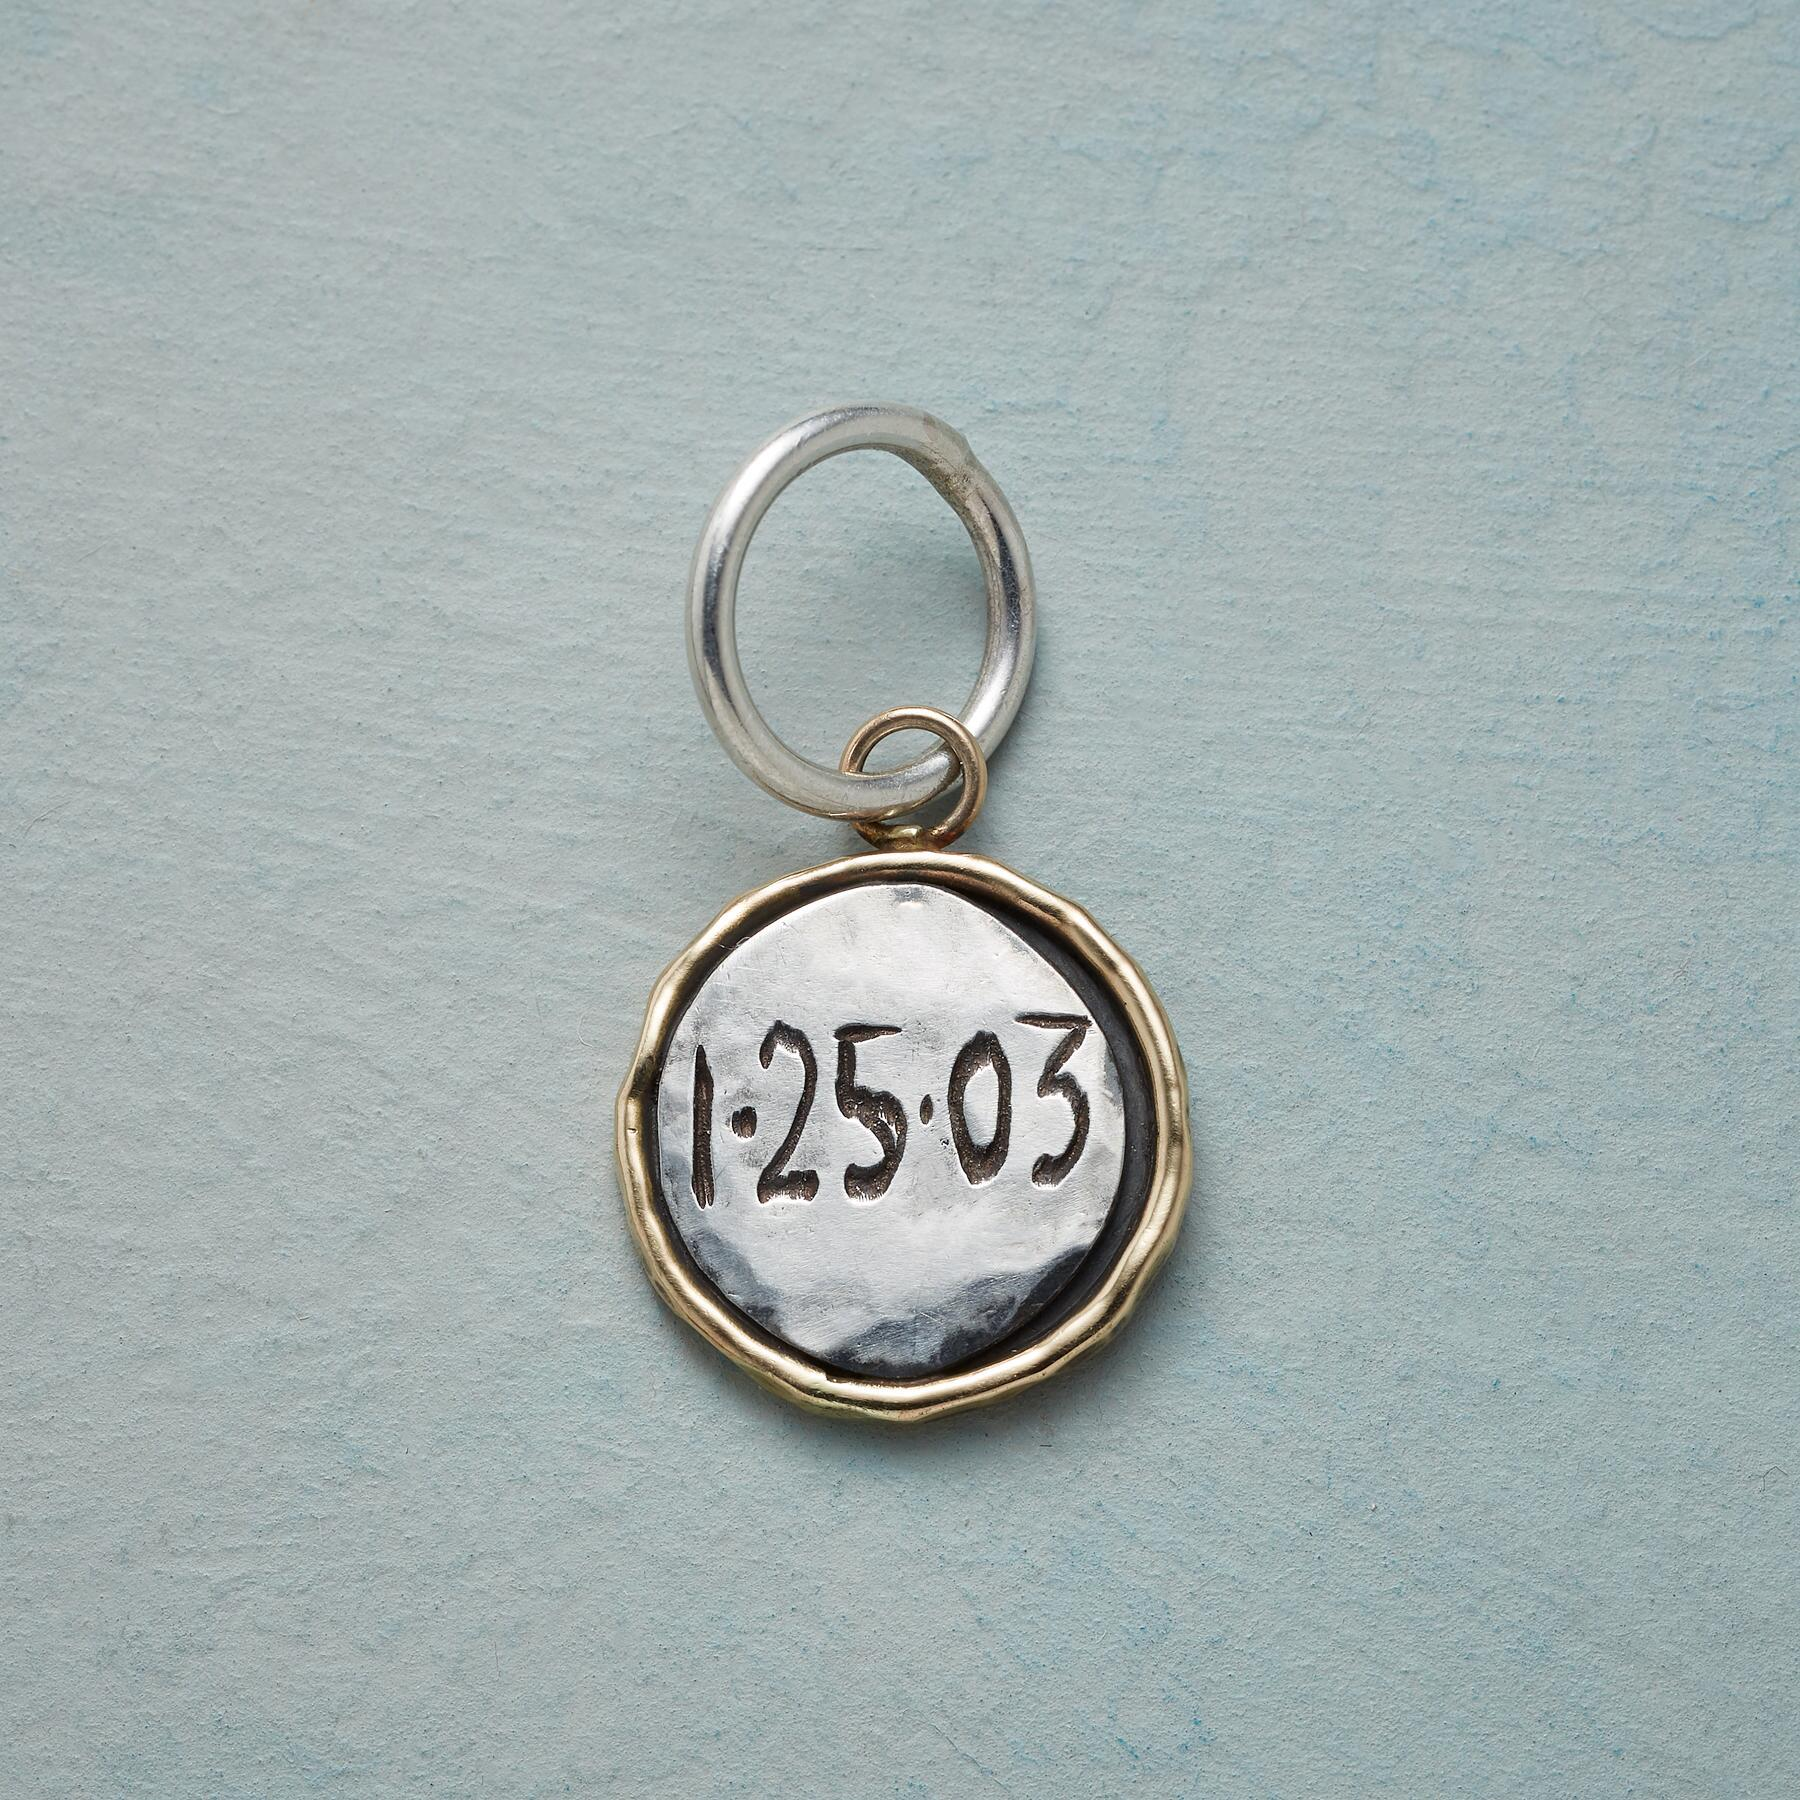 SPECIAL DATE CHARM: View 2